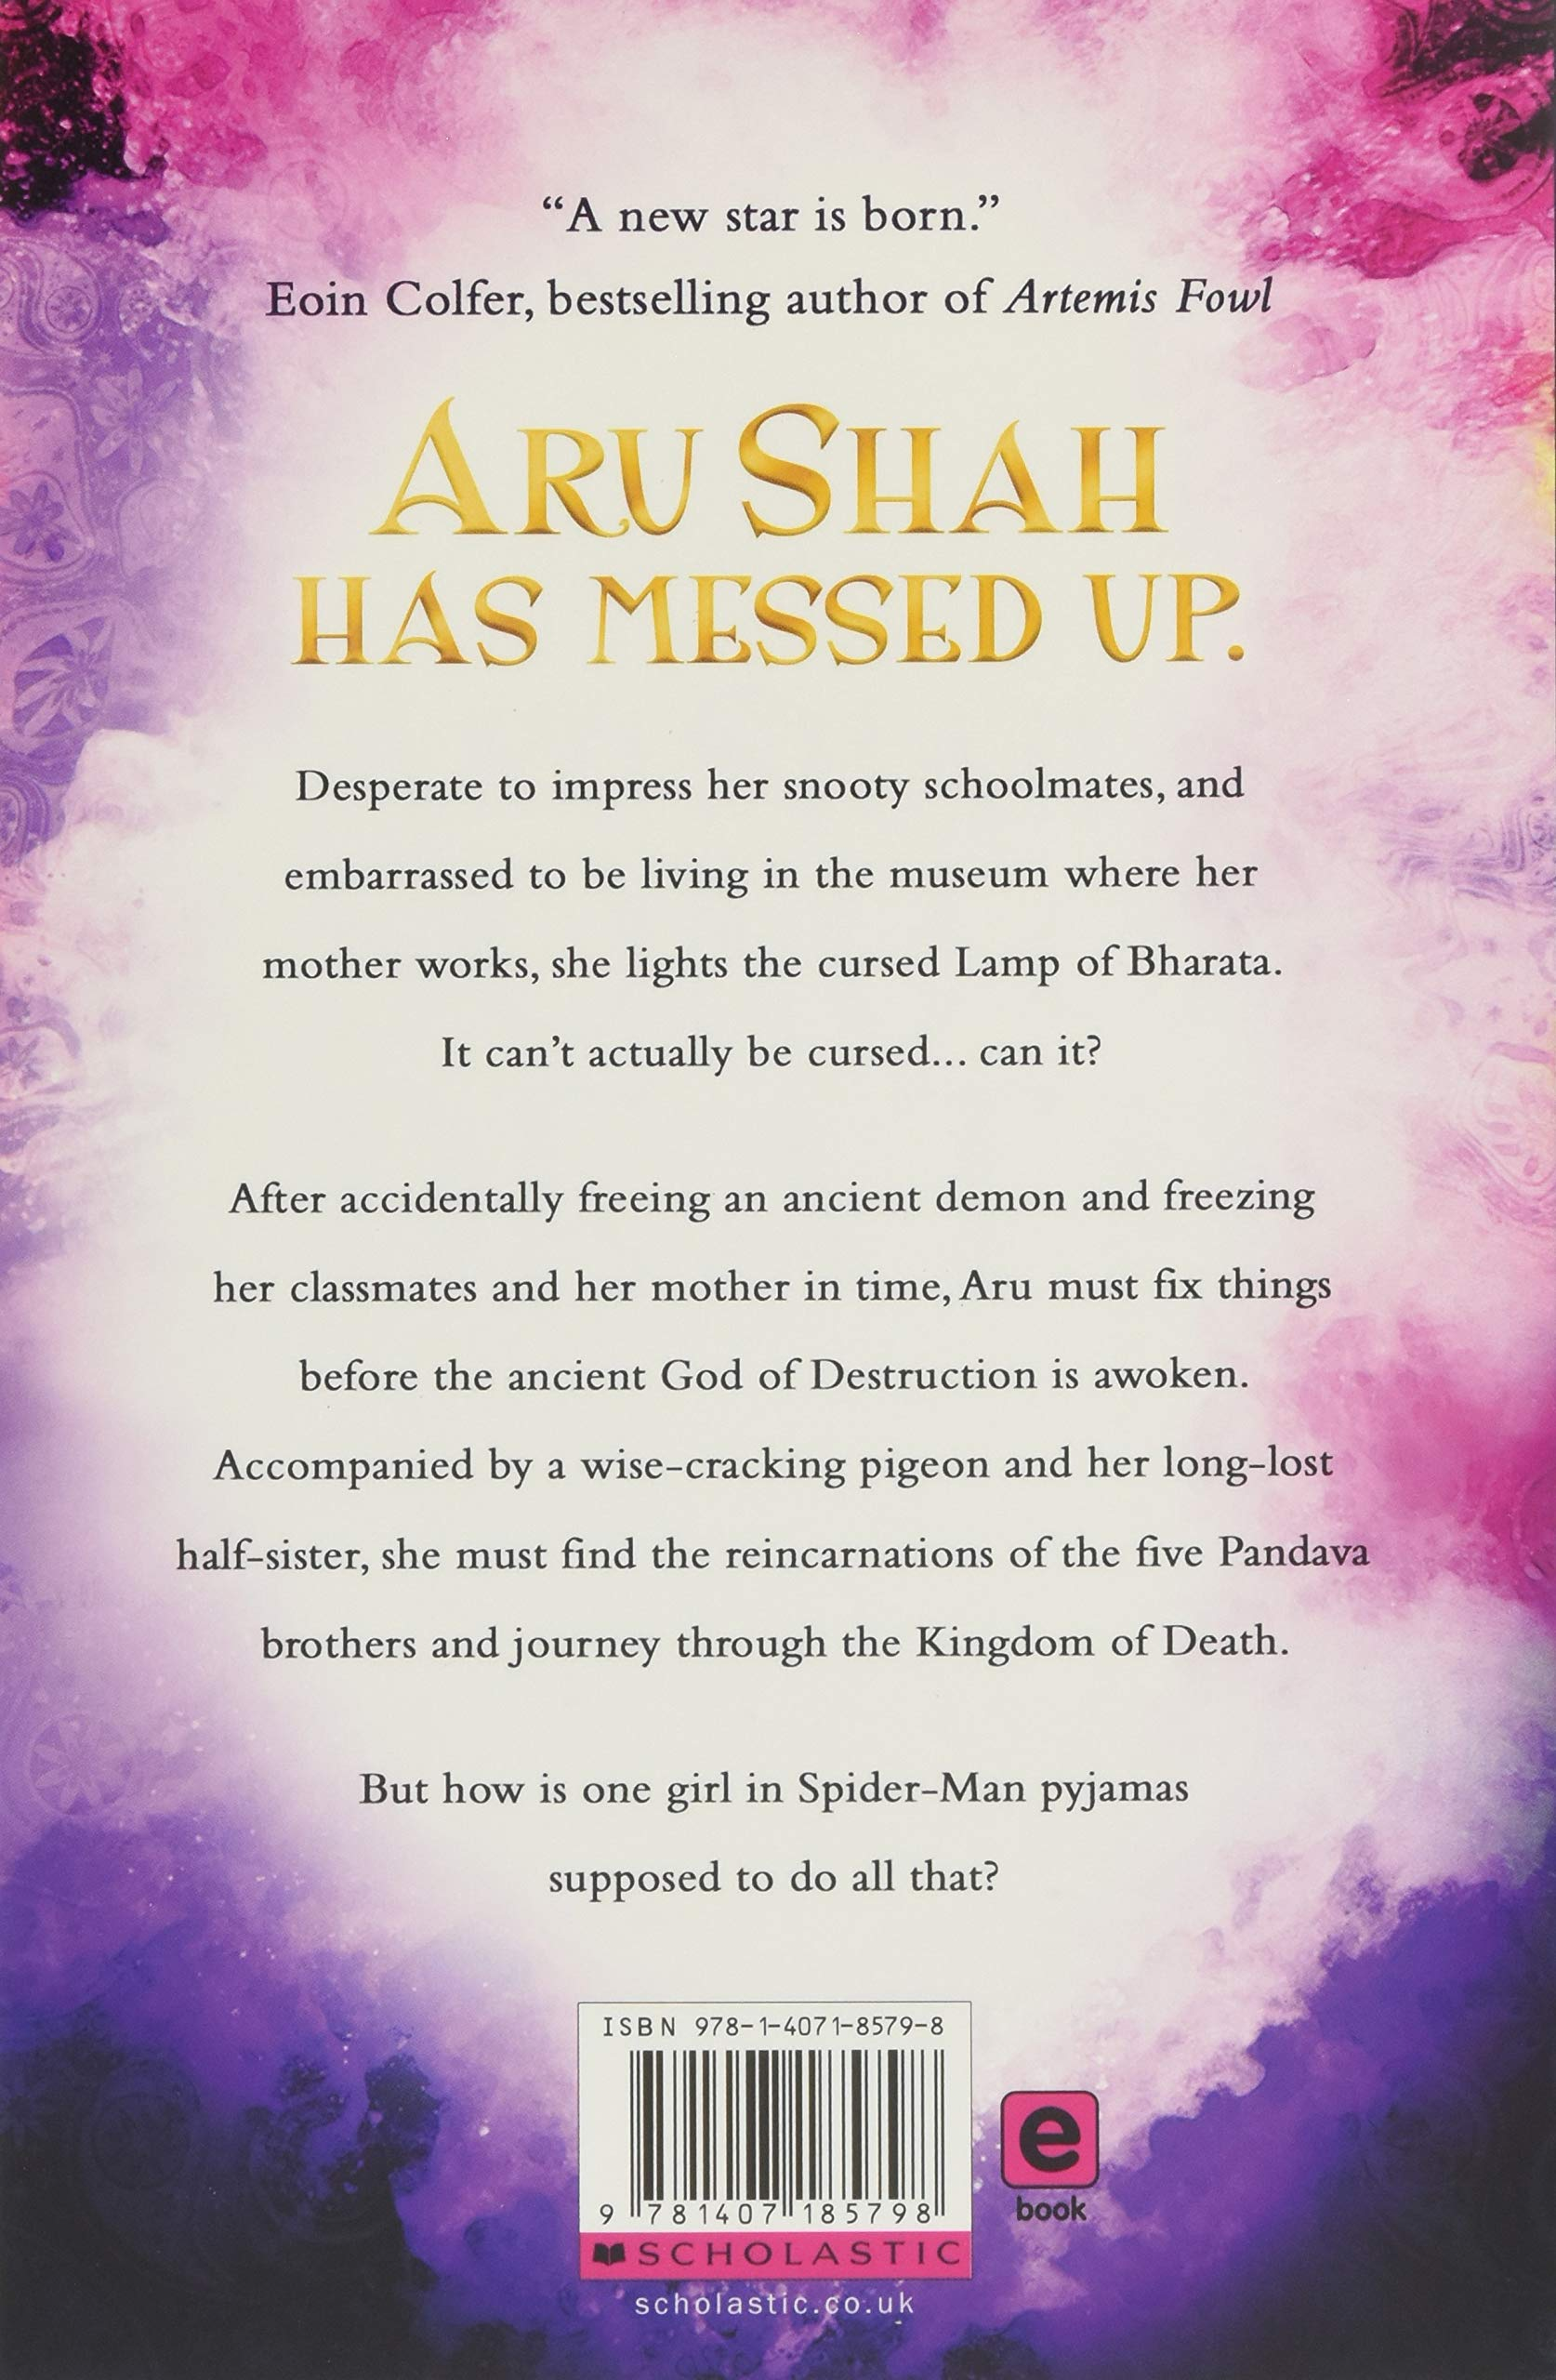 Aru Shah And The Tree Of Wishes Summary